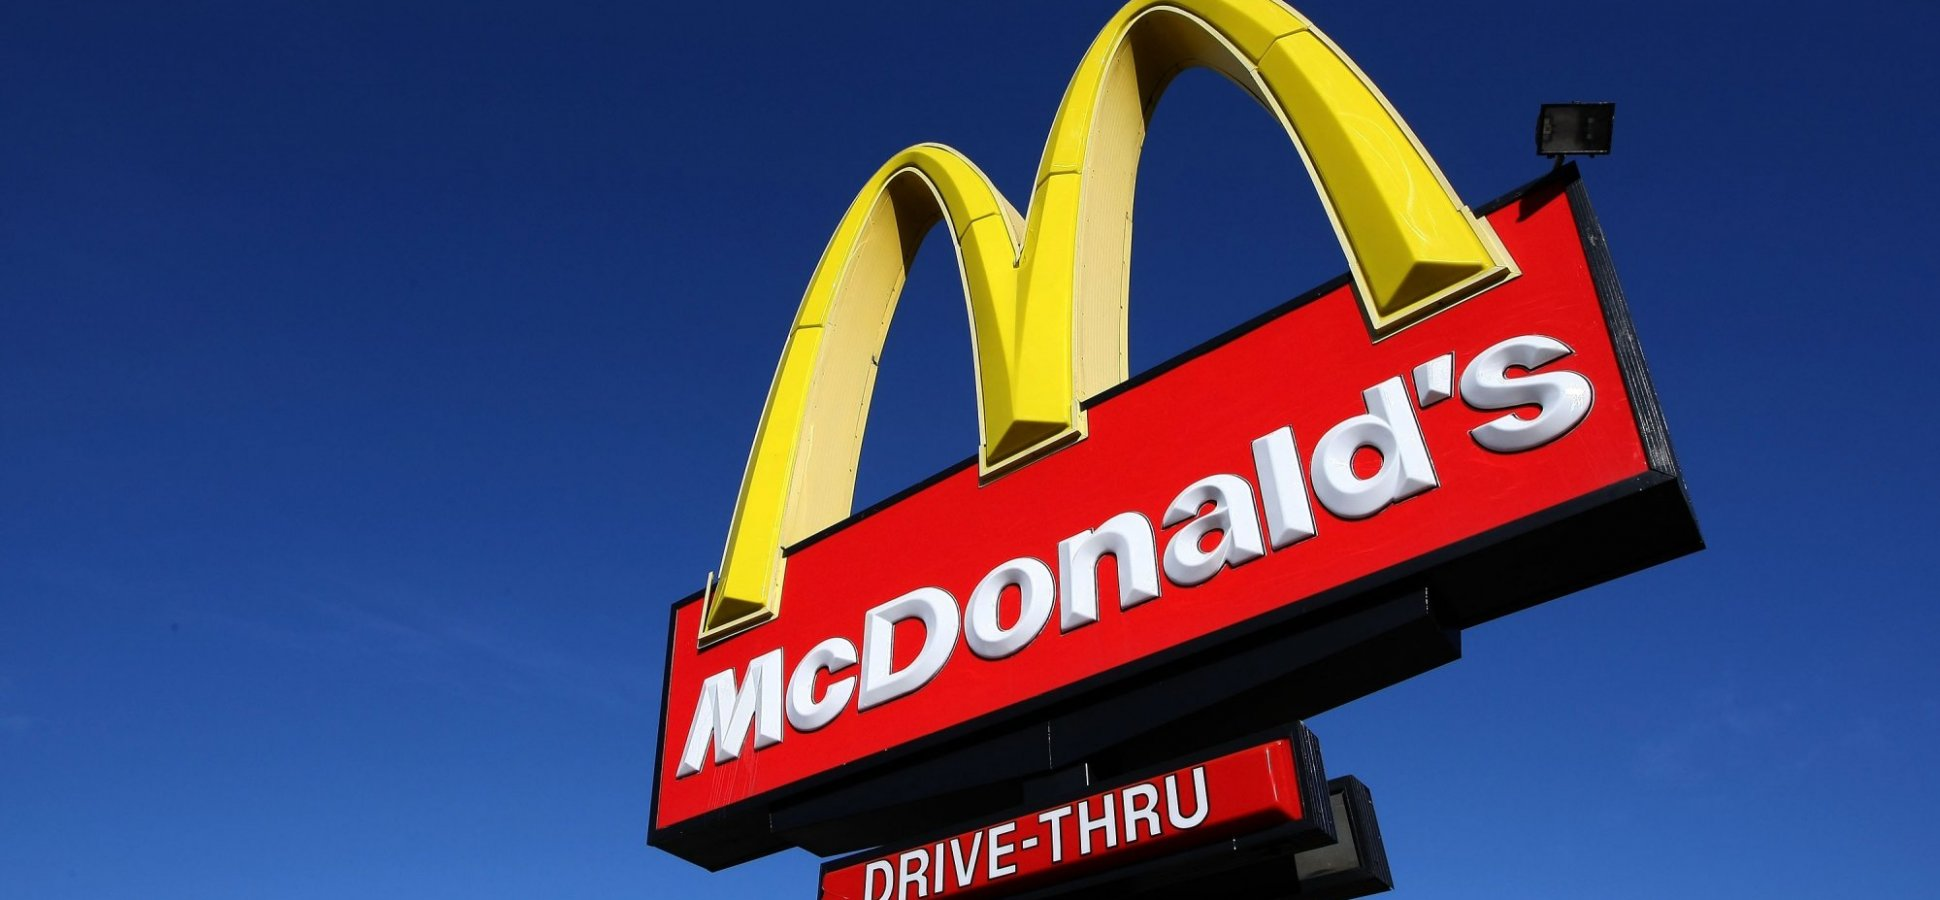 This Simple Act of Kindness at McDonald's Improved a Dying Man's Life (That's Why It Went So Viral)